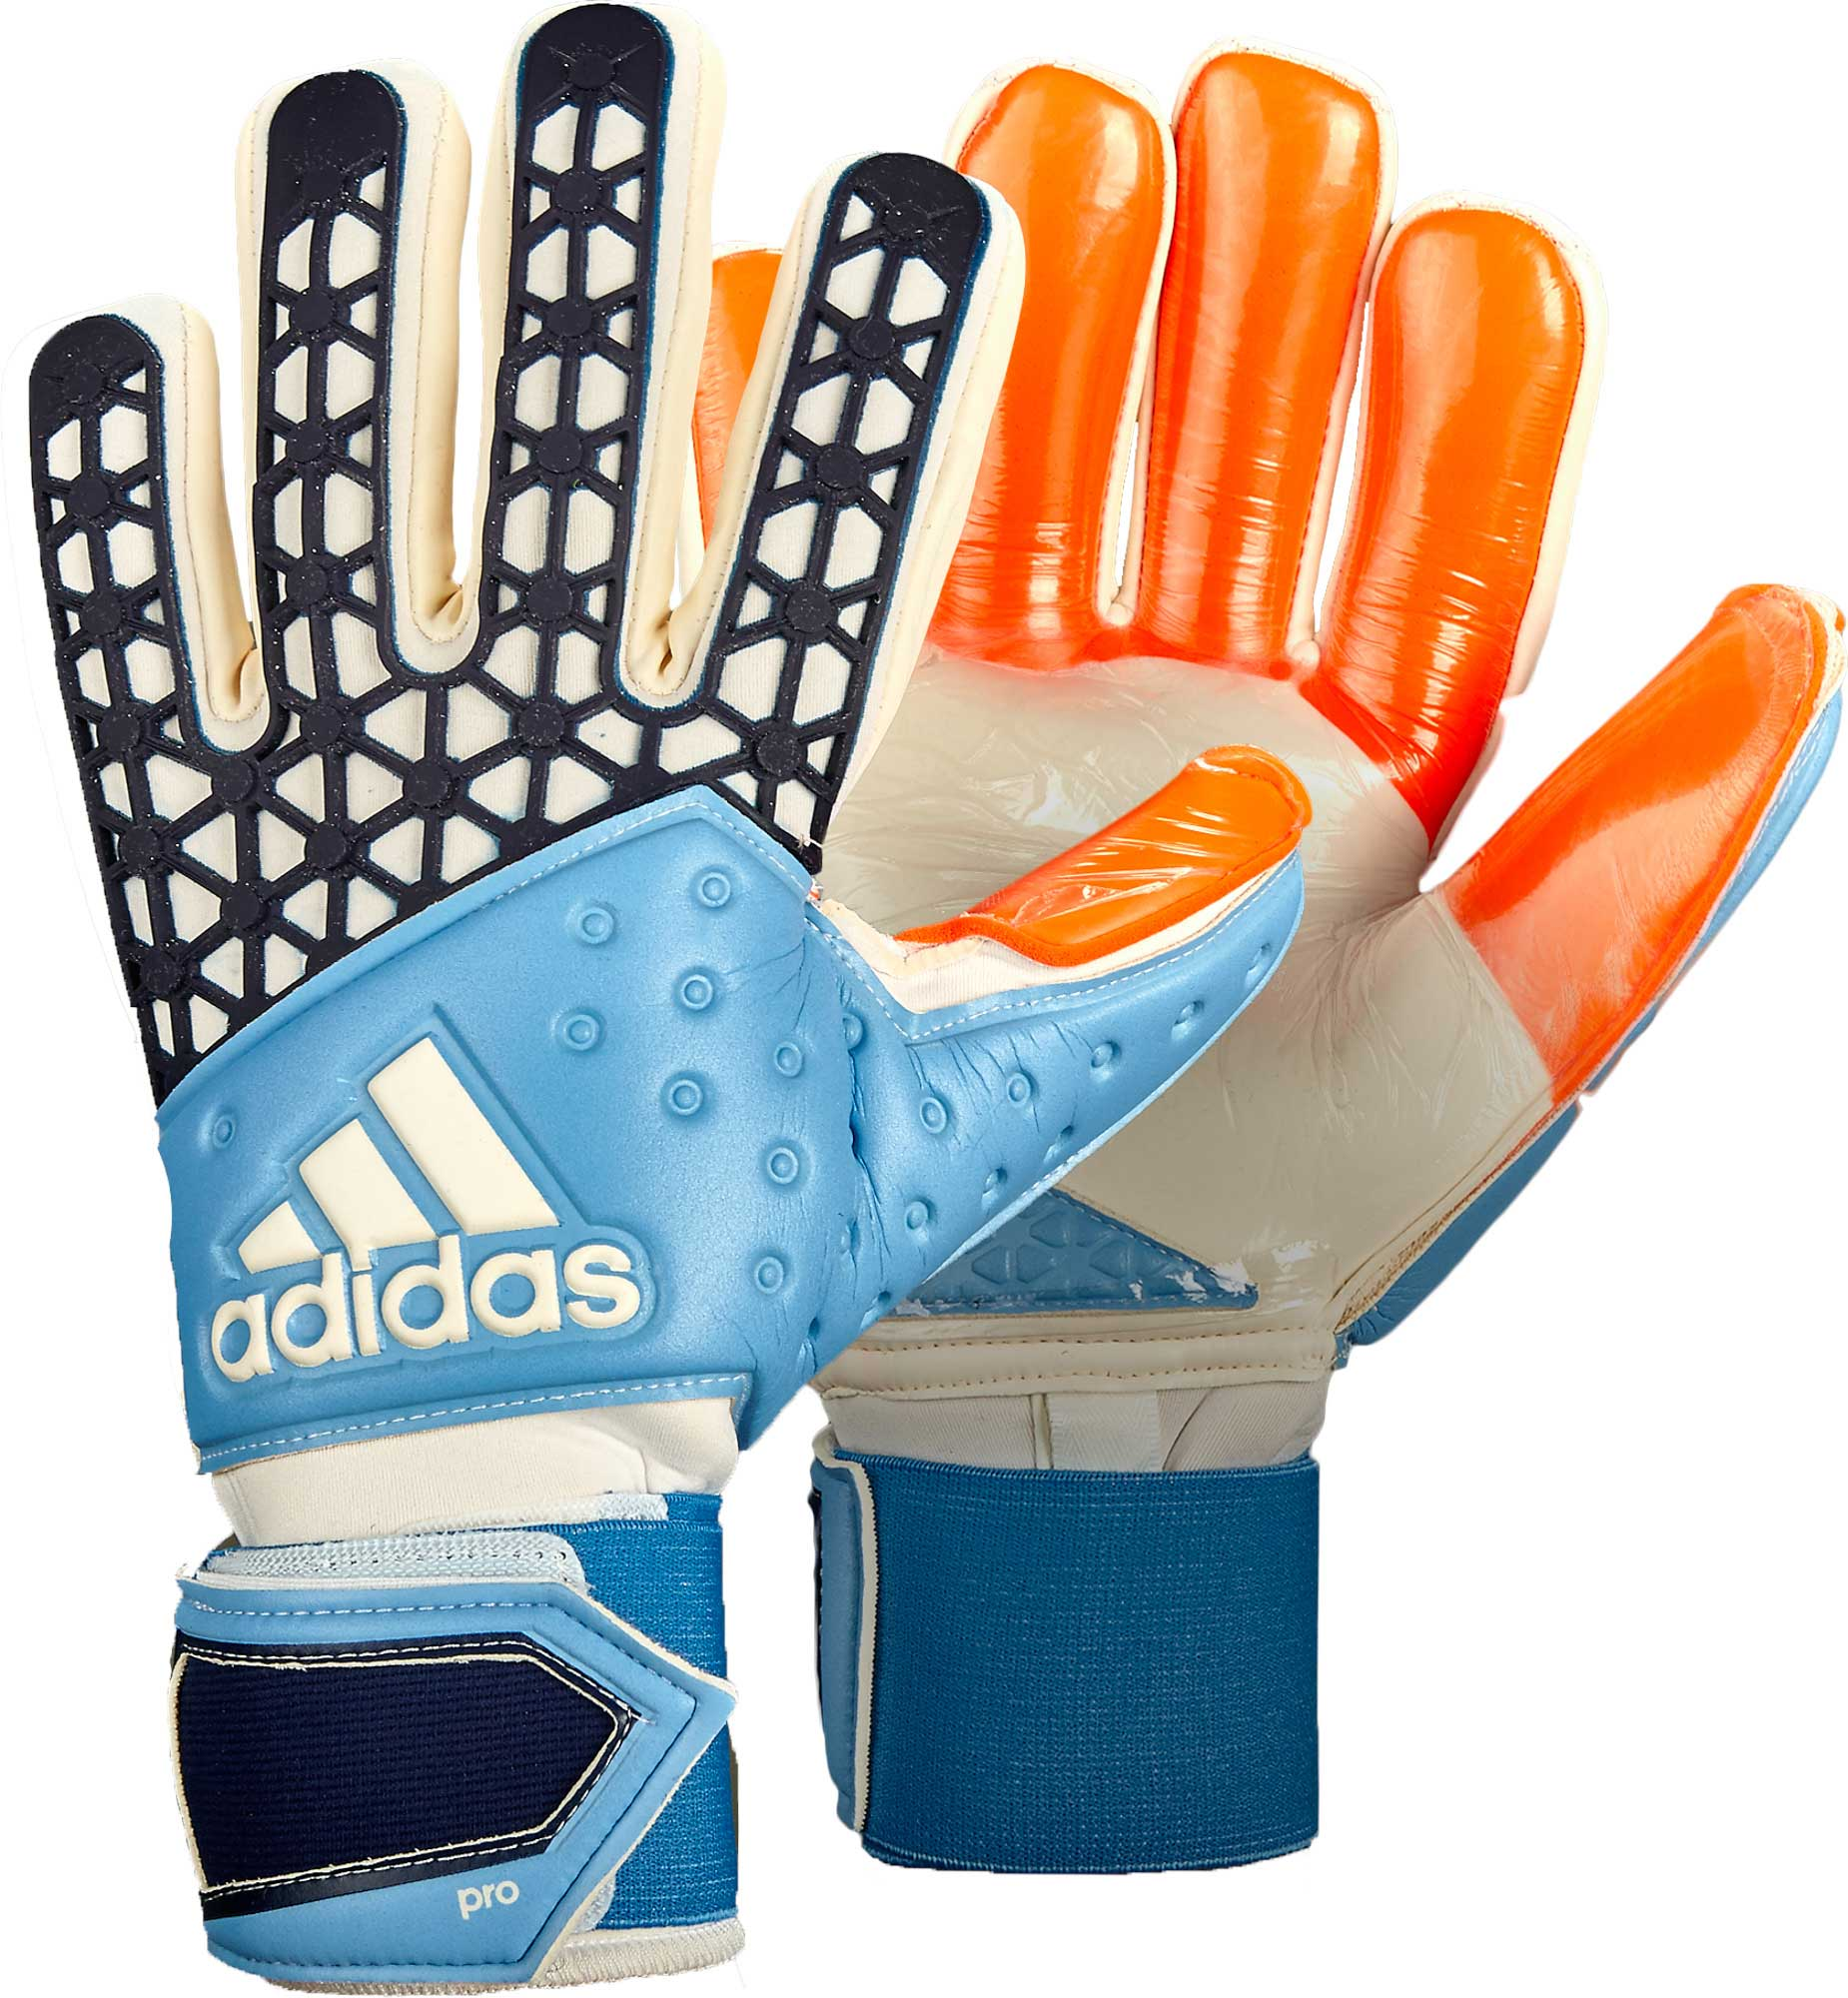 competitive price 8a147 8d81b greece adidas protator zones pro manuel neuer us fac55 02a0d